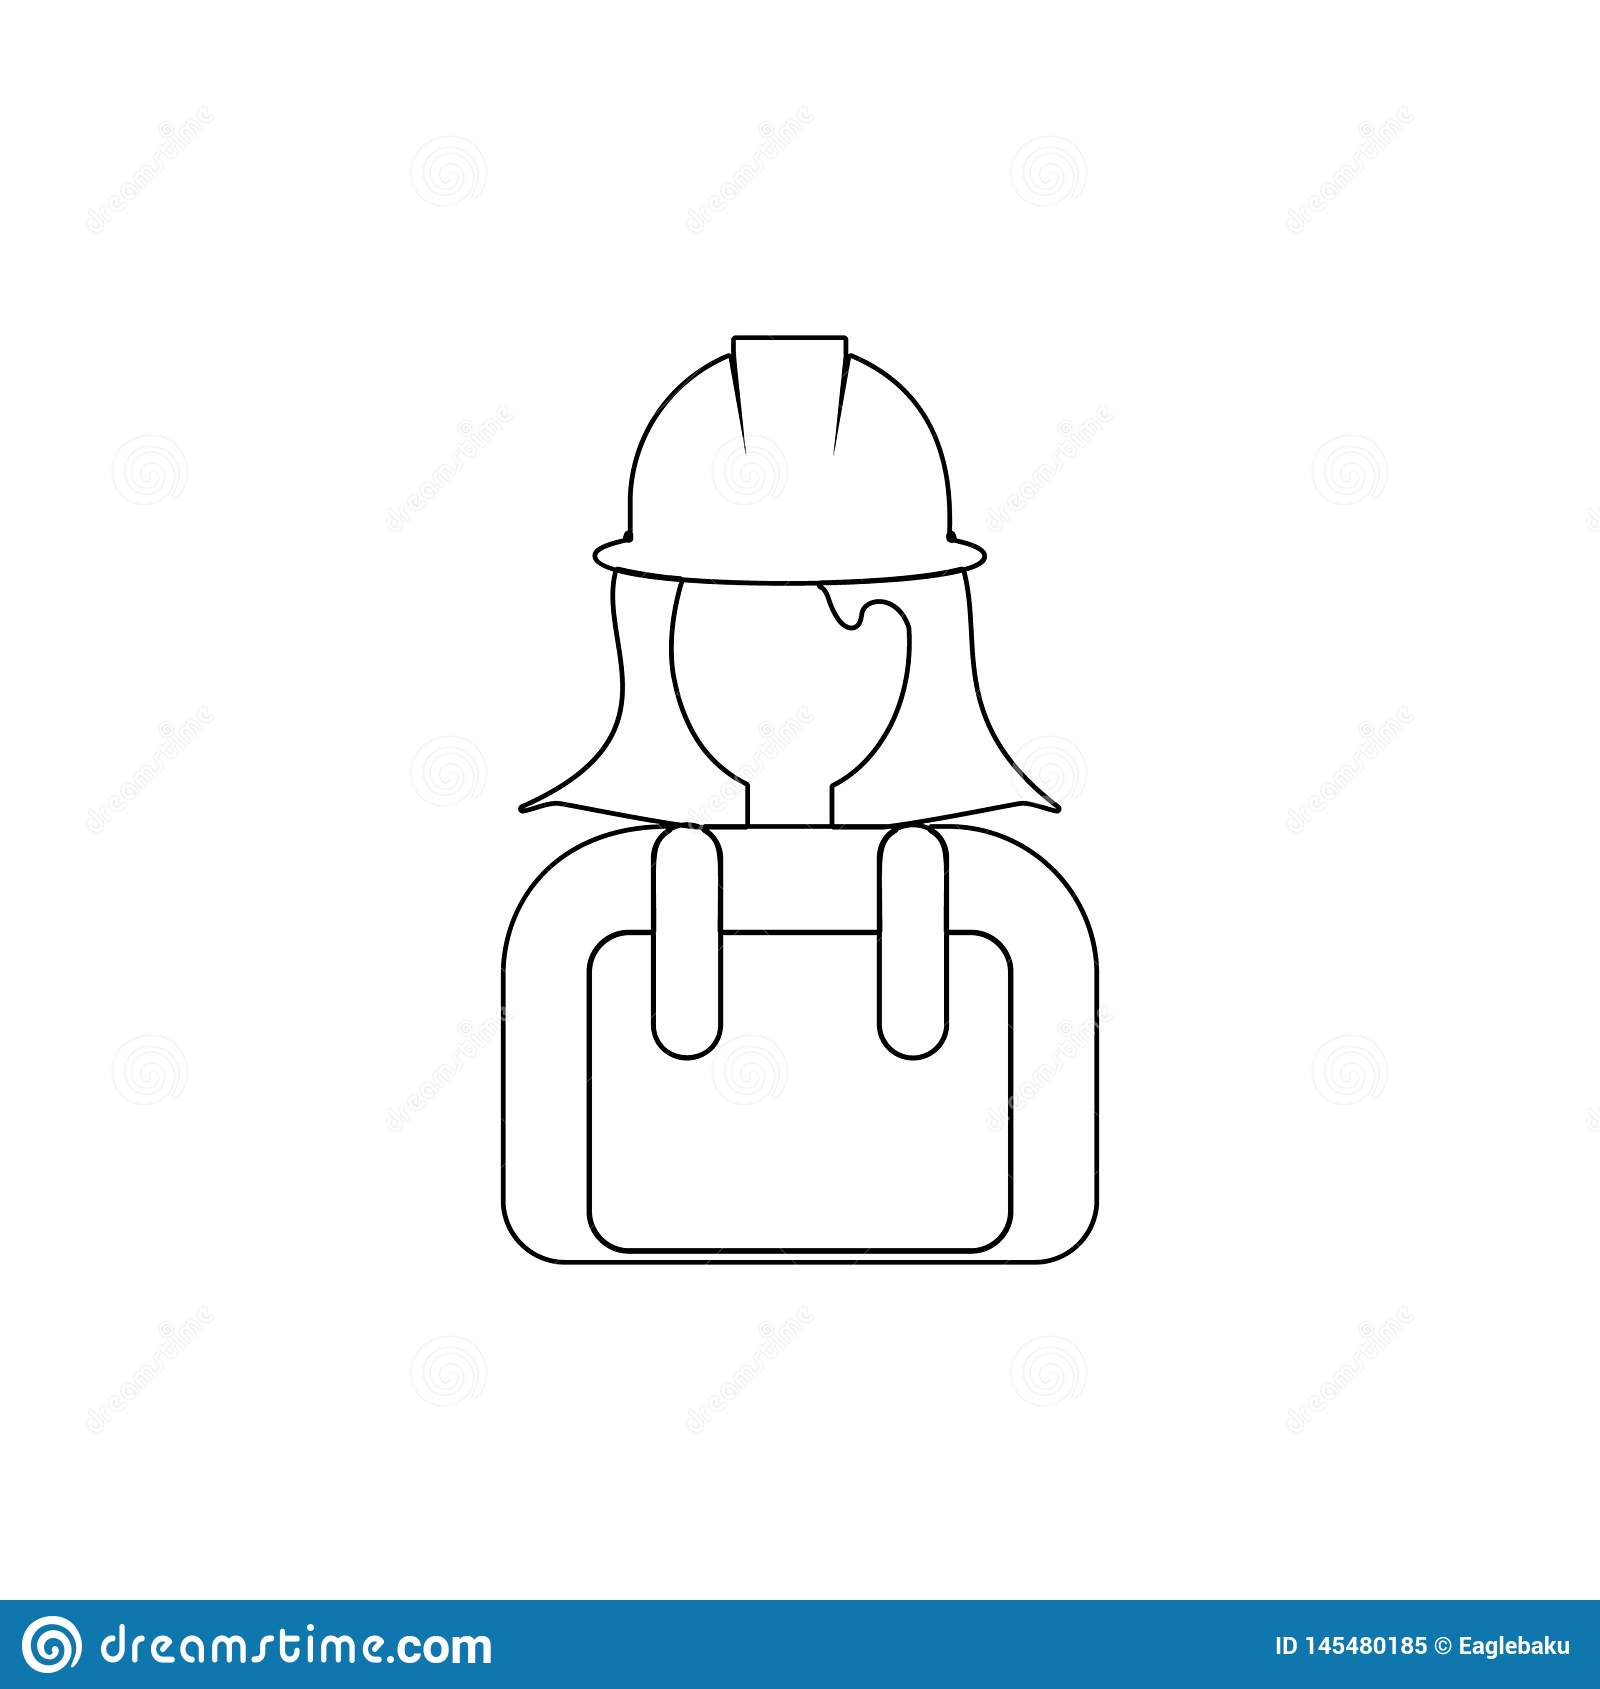 avatar outline icon. Element of popular avatars icon. Premium quality graphic design. Signs, symbols collection icon for websites